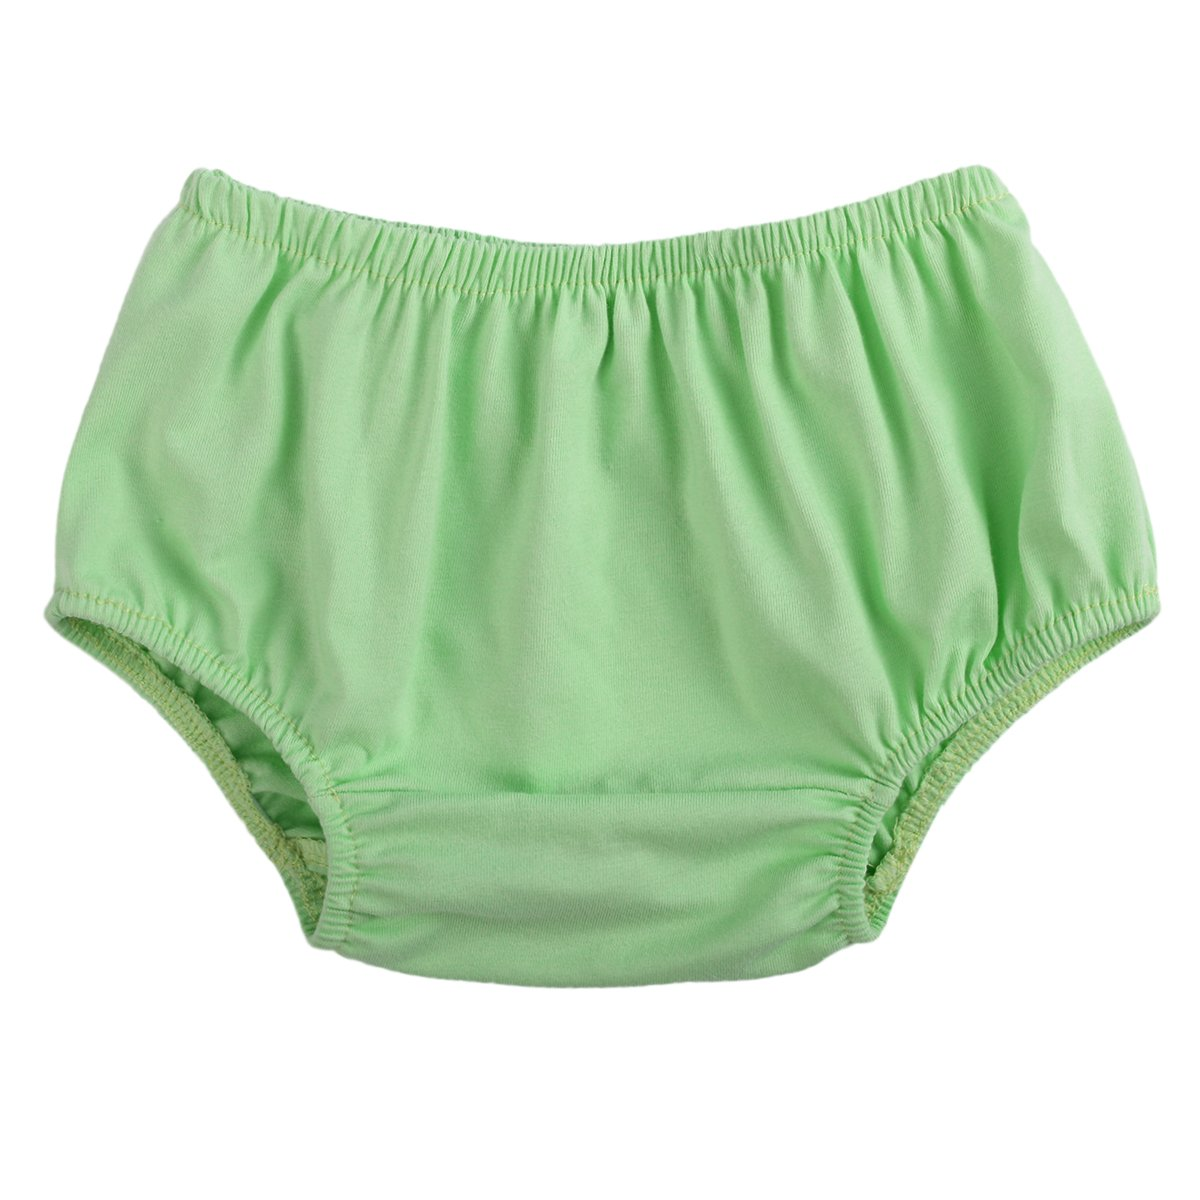 Baby Girl Boy Toddler Cotton Basic Diaper Cover Bloomers Short Underwear Panties